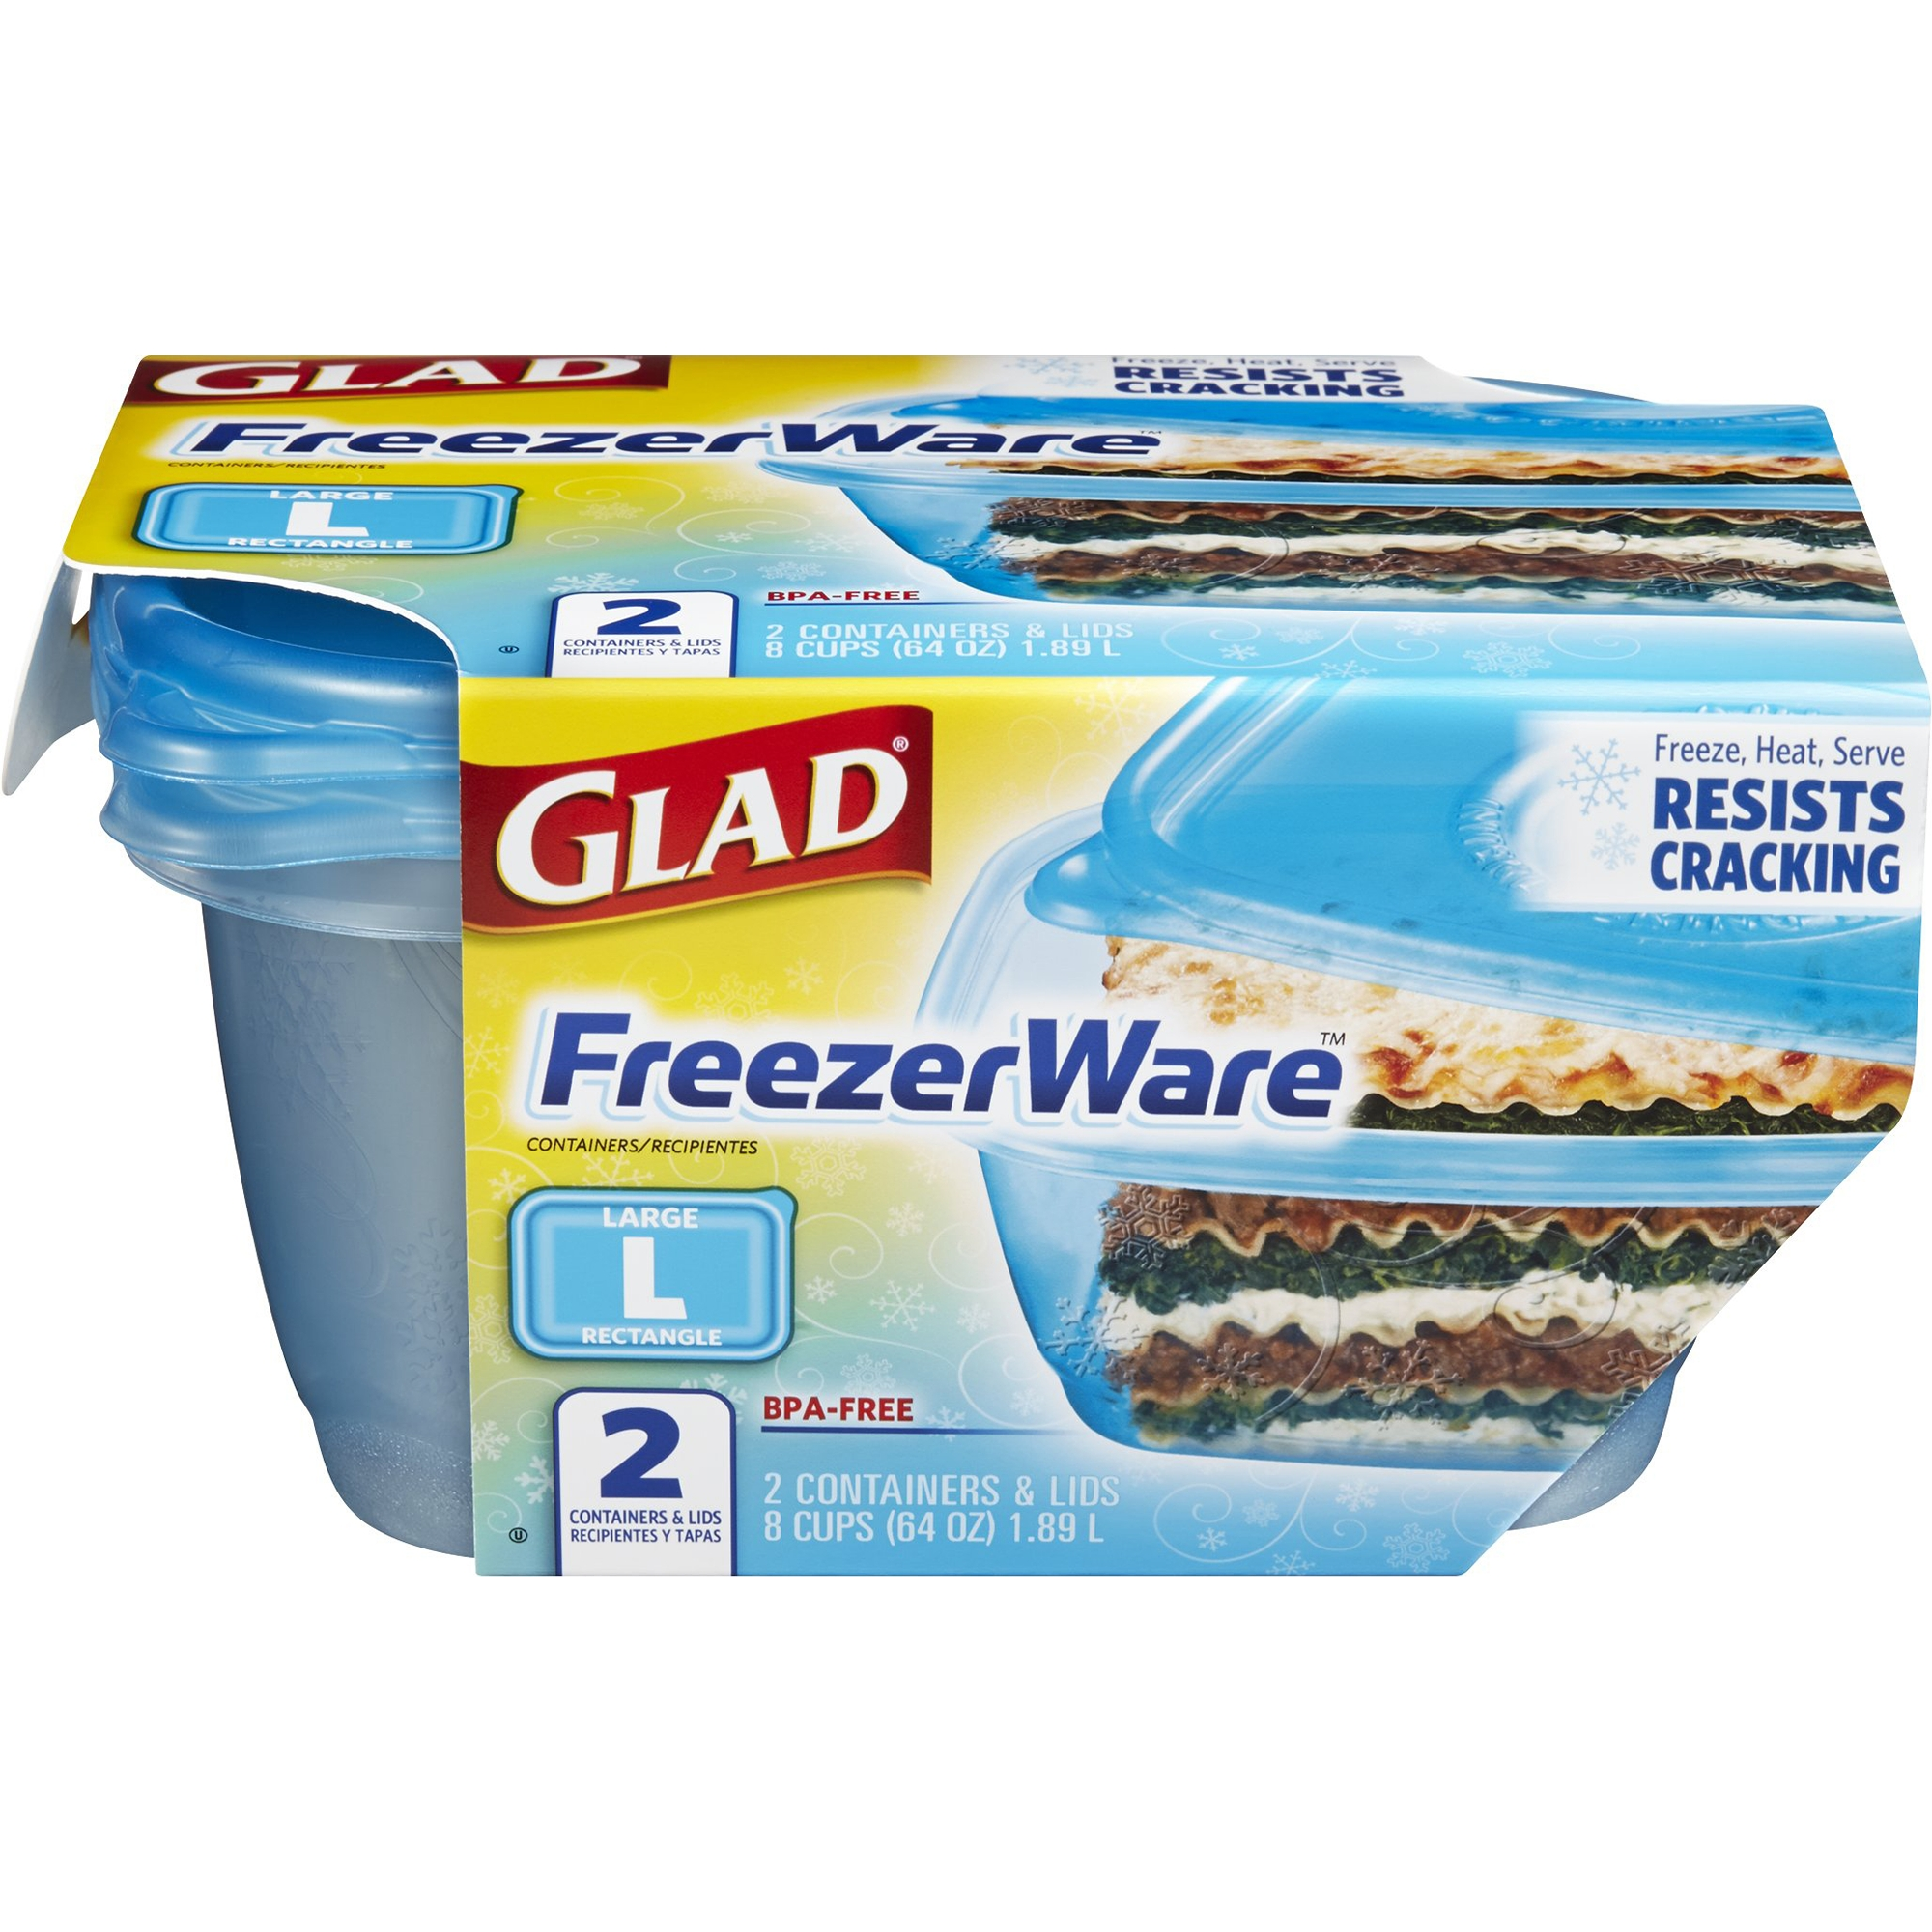 Glad Food Storage Containers - Glad FreezeWare Contatiners - Large - 64 oz - 2 ct